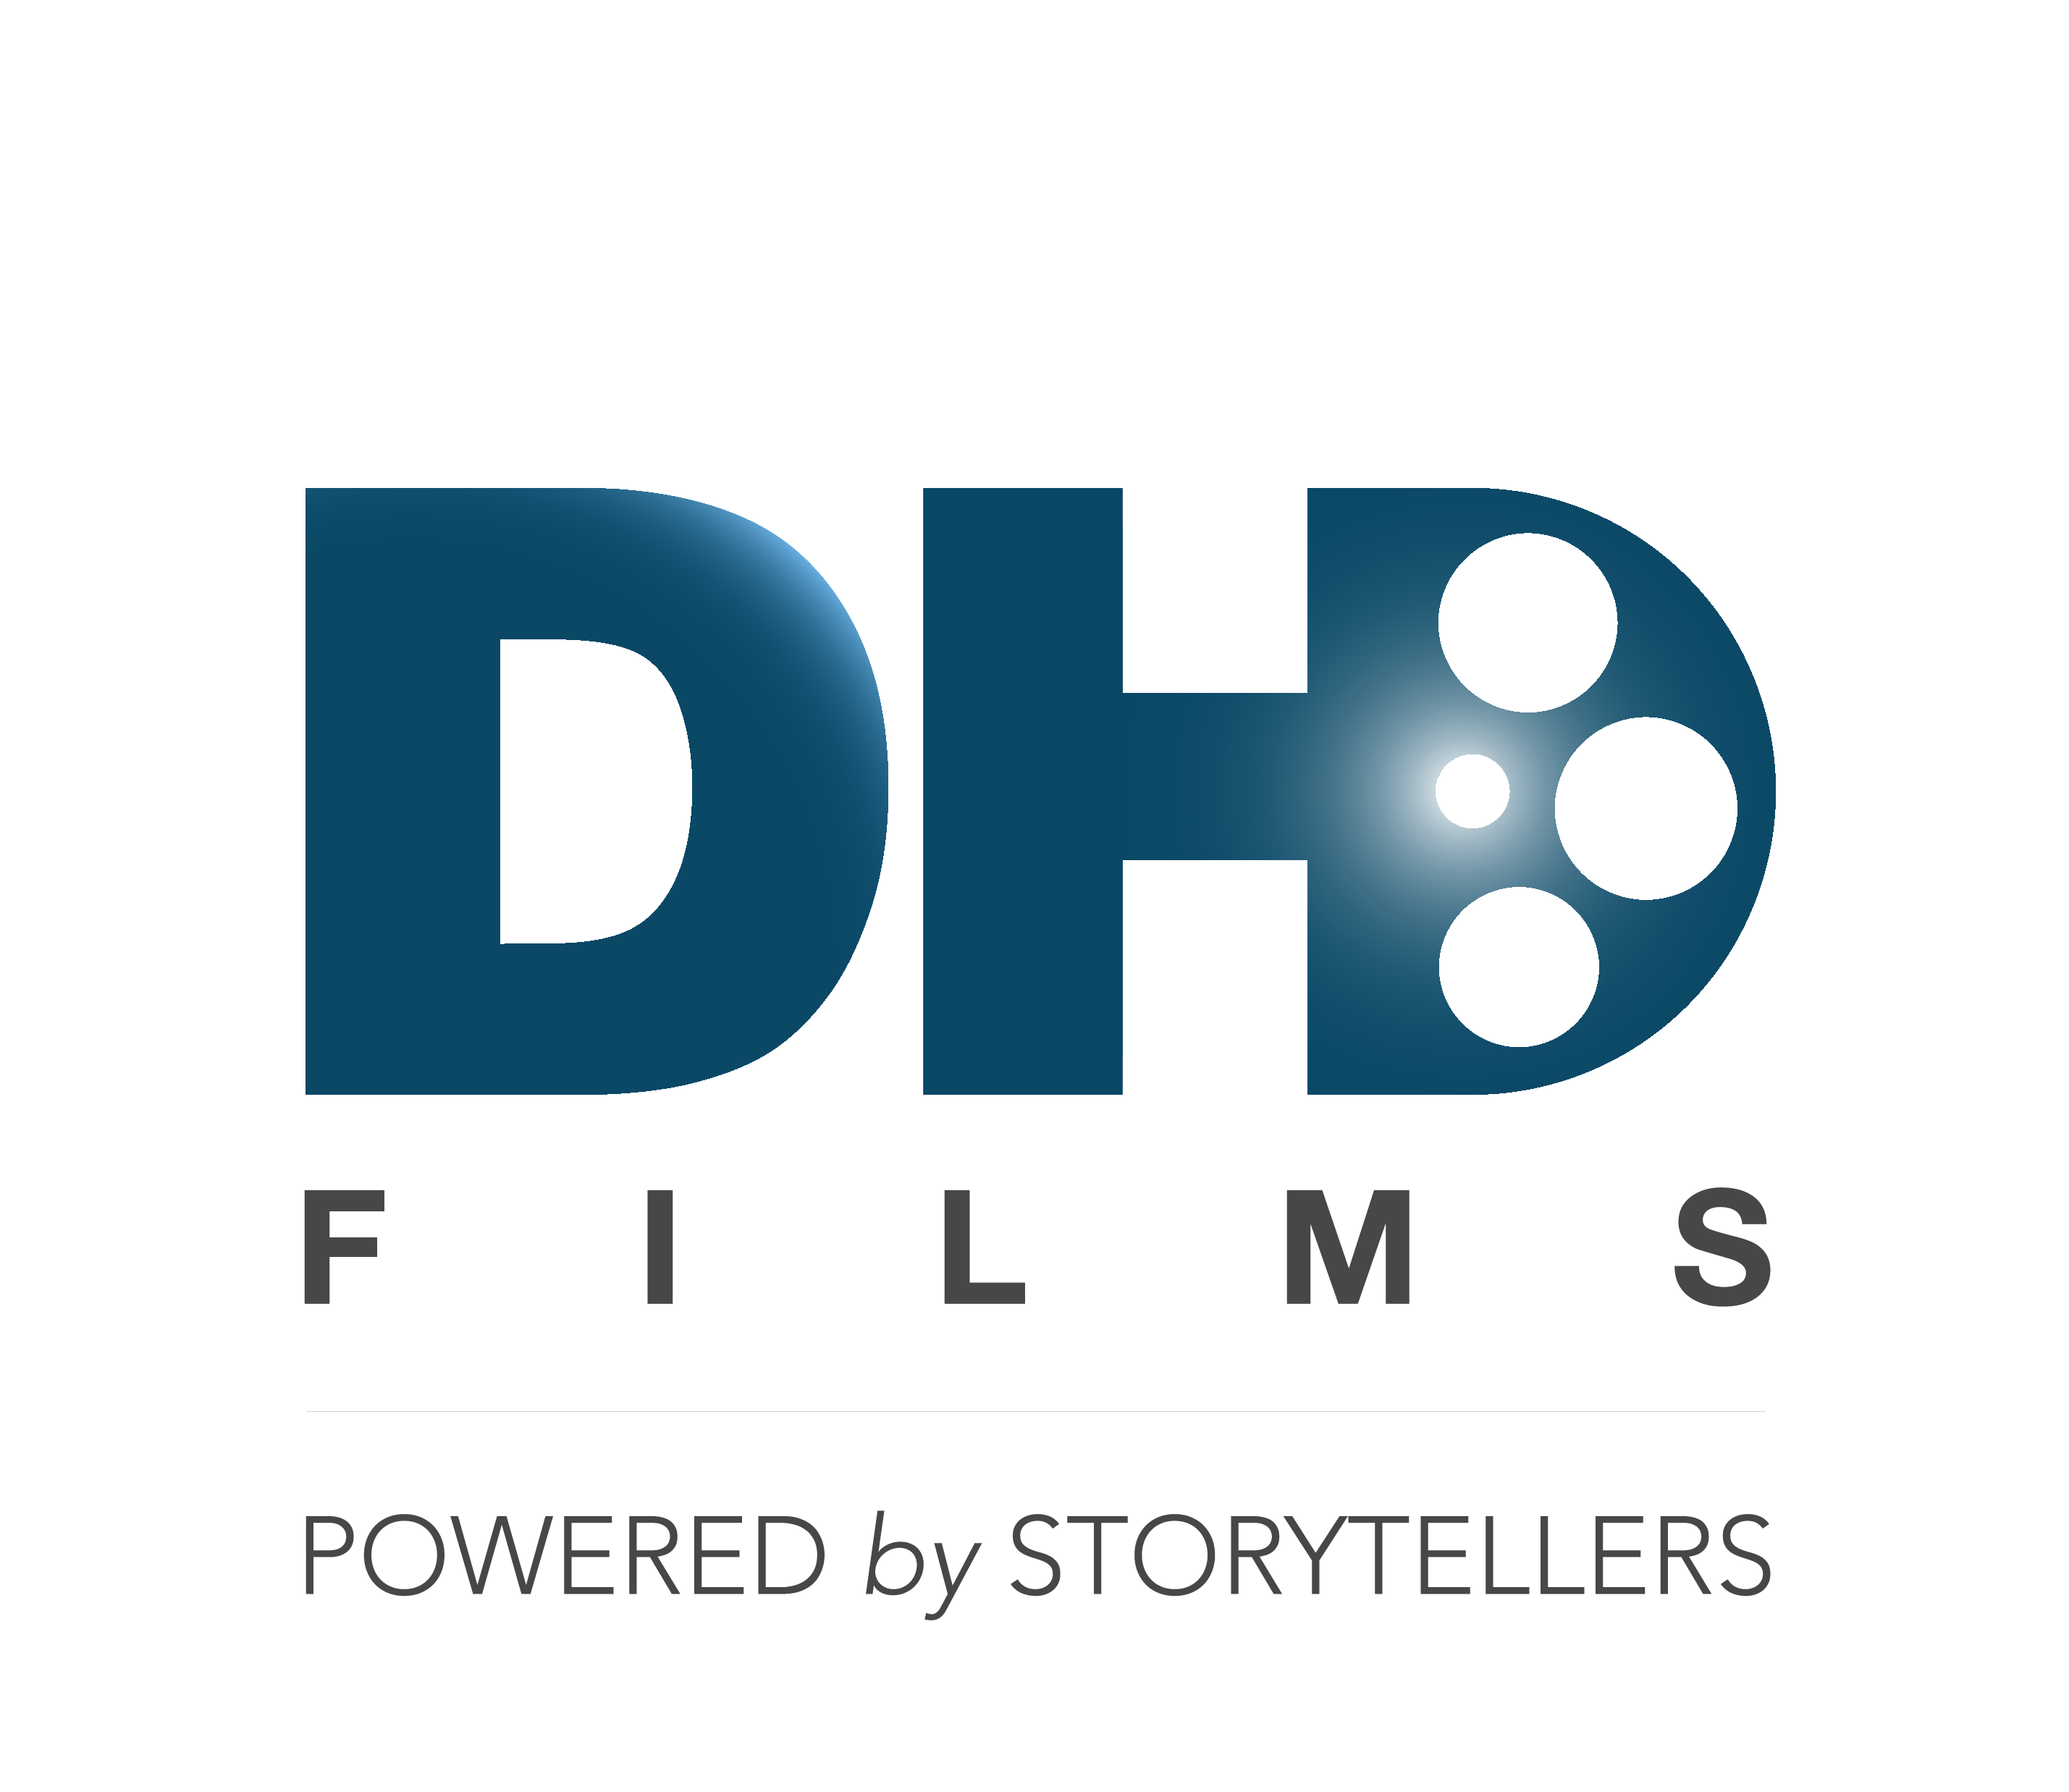 DHDFILMS_LOGO_FINAL_wTAG_v01_digital